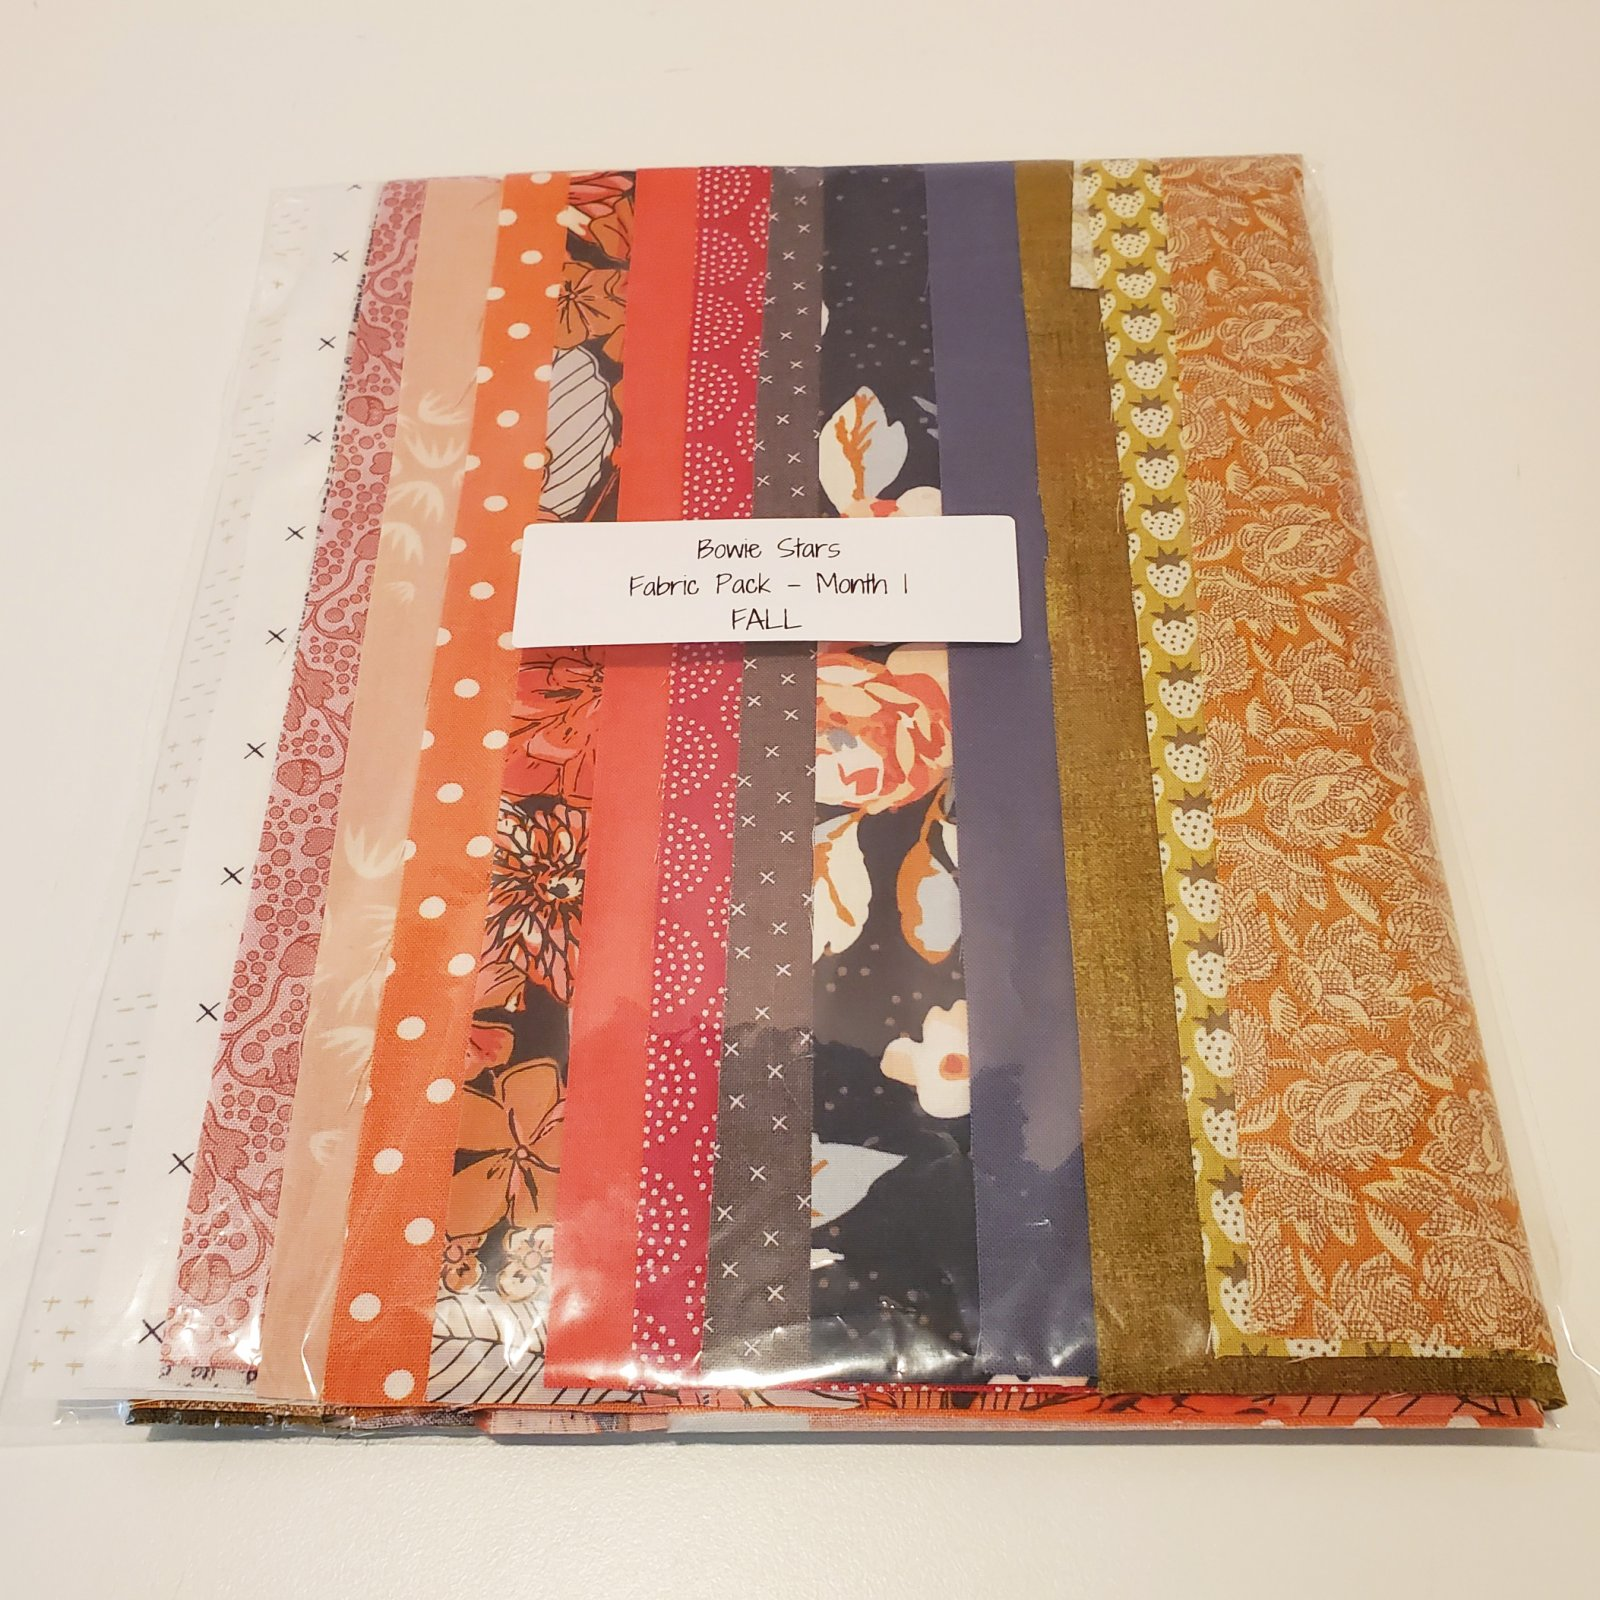 Bowie Stars Fabric Pack Month 1 - Fall